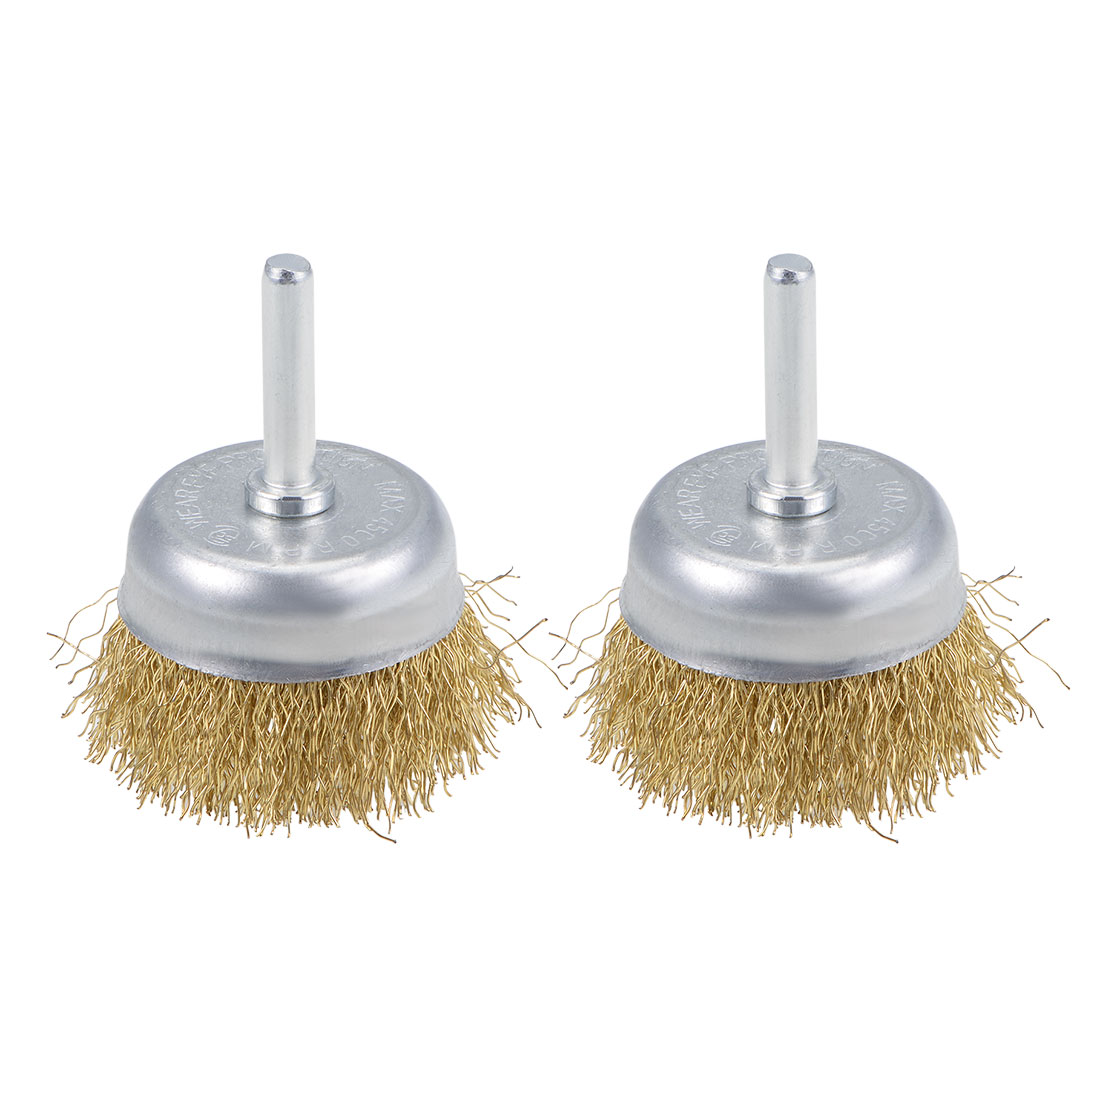 2-Inch Wire Cup Brush Brass Plated Crimped Steel with 1/4-inch Shank 2 Pcs